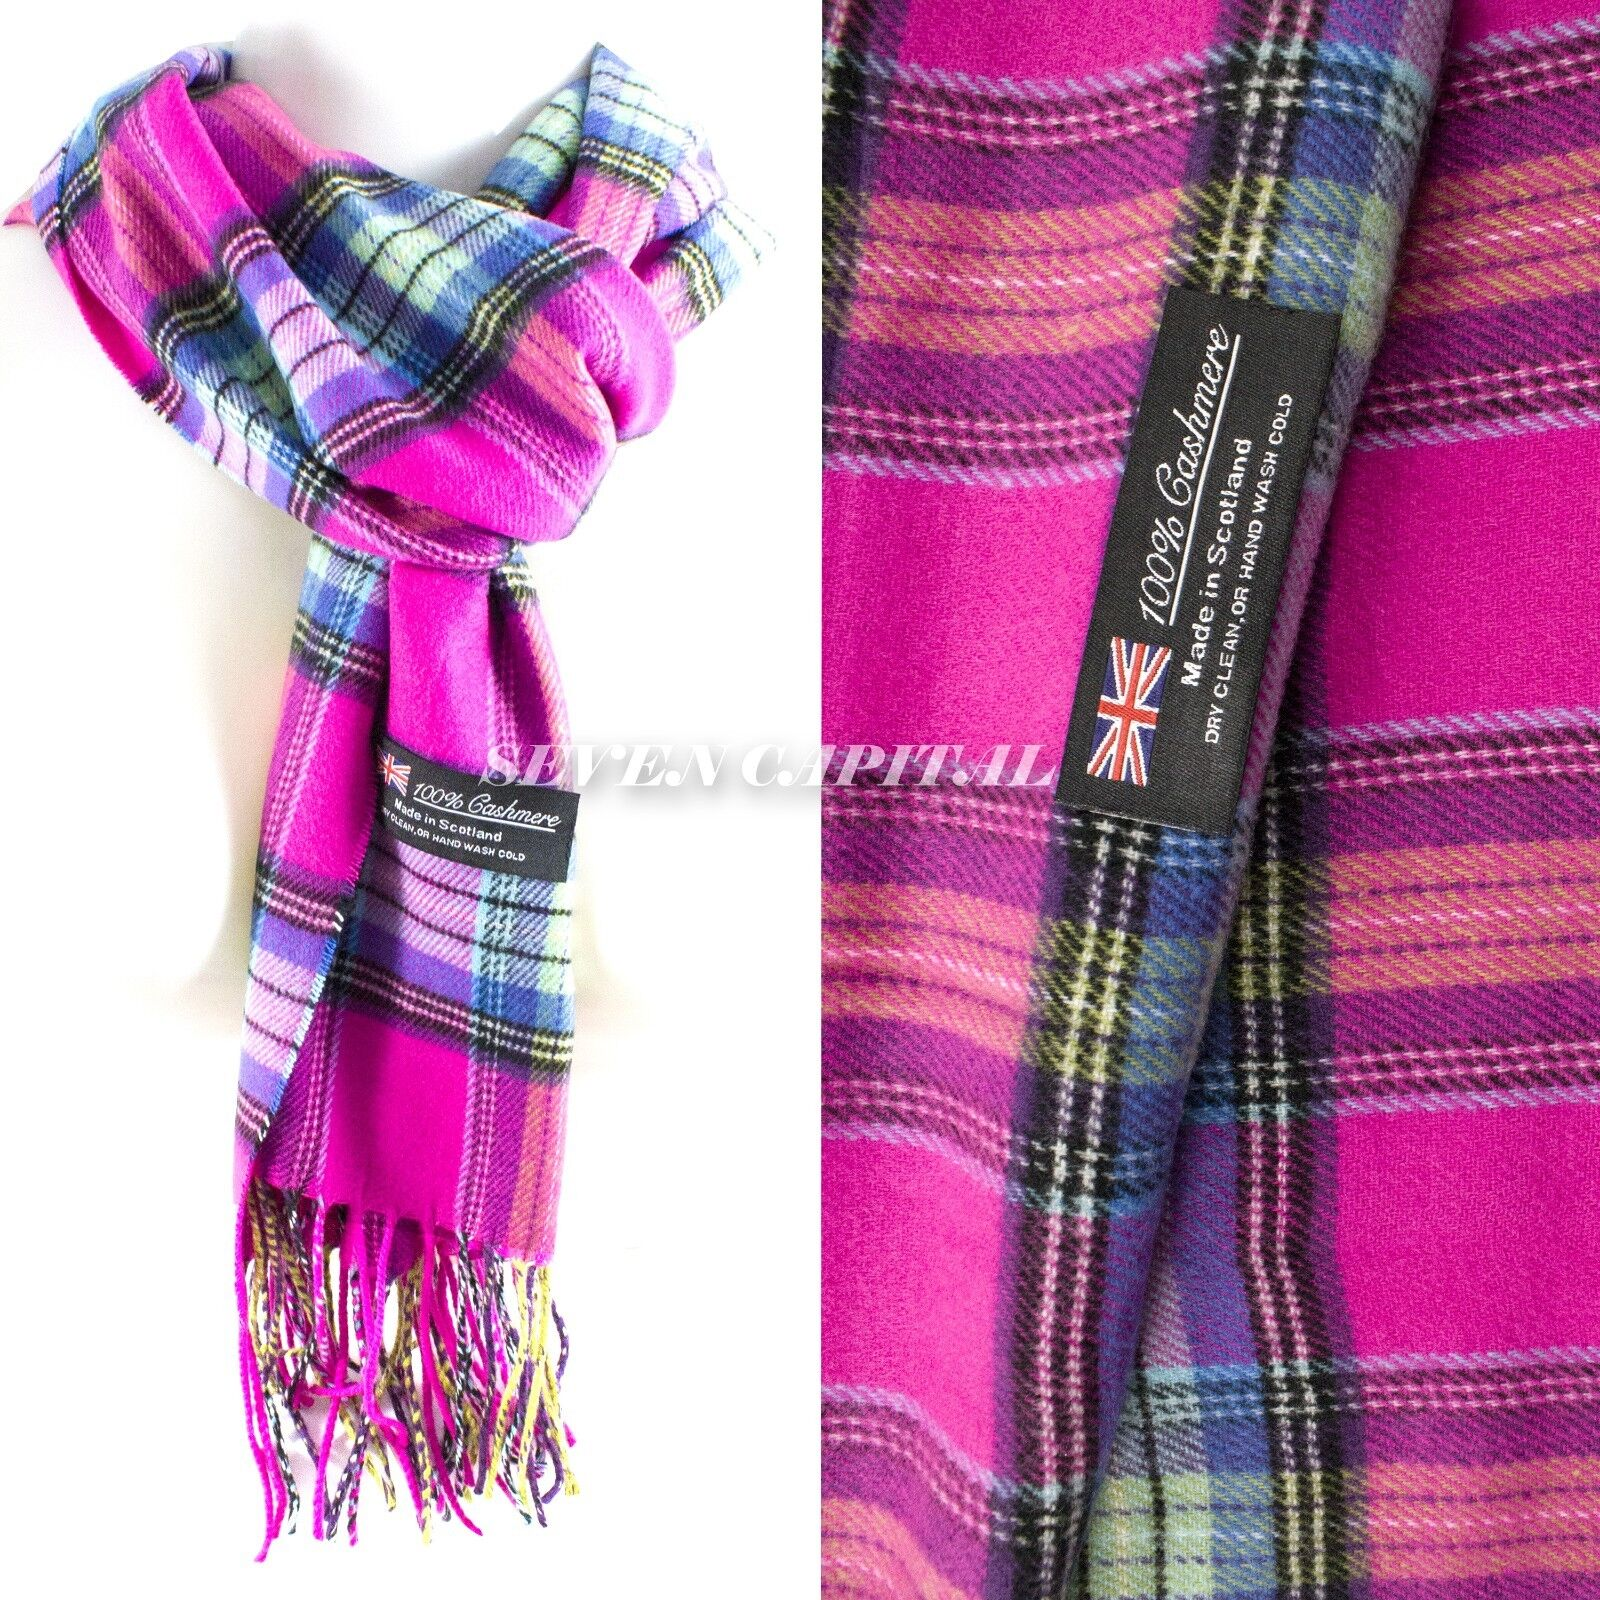 Mens Womens Winter Warm SCOTLAND Made 100% CASHMERE Scarf Scarves Plaid Wool 23. Plaid: Pink